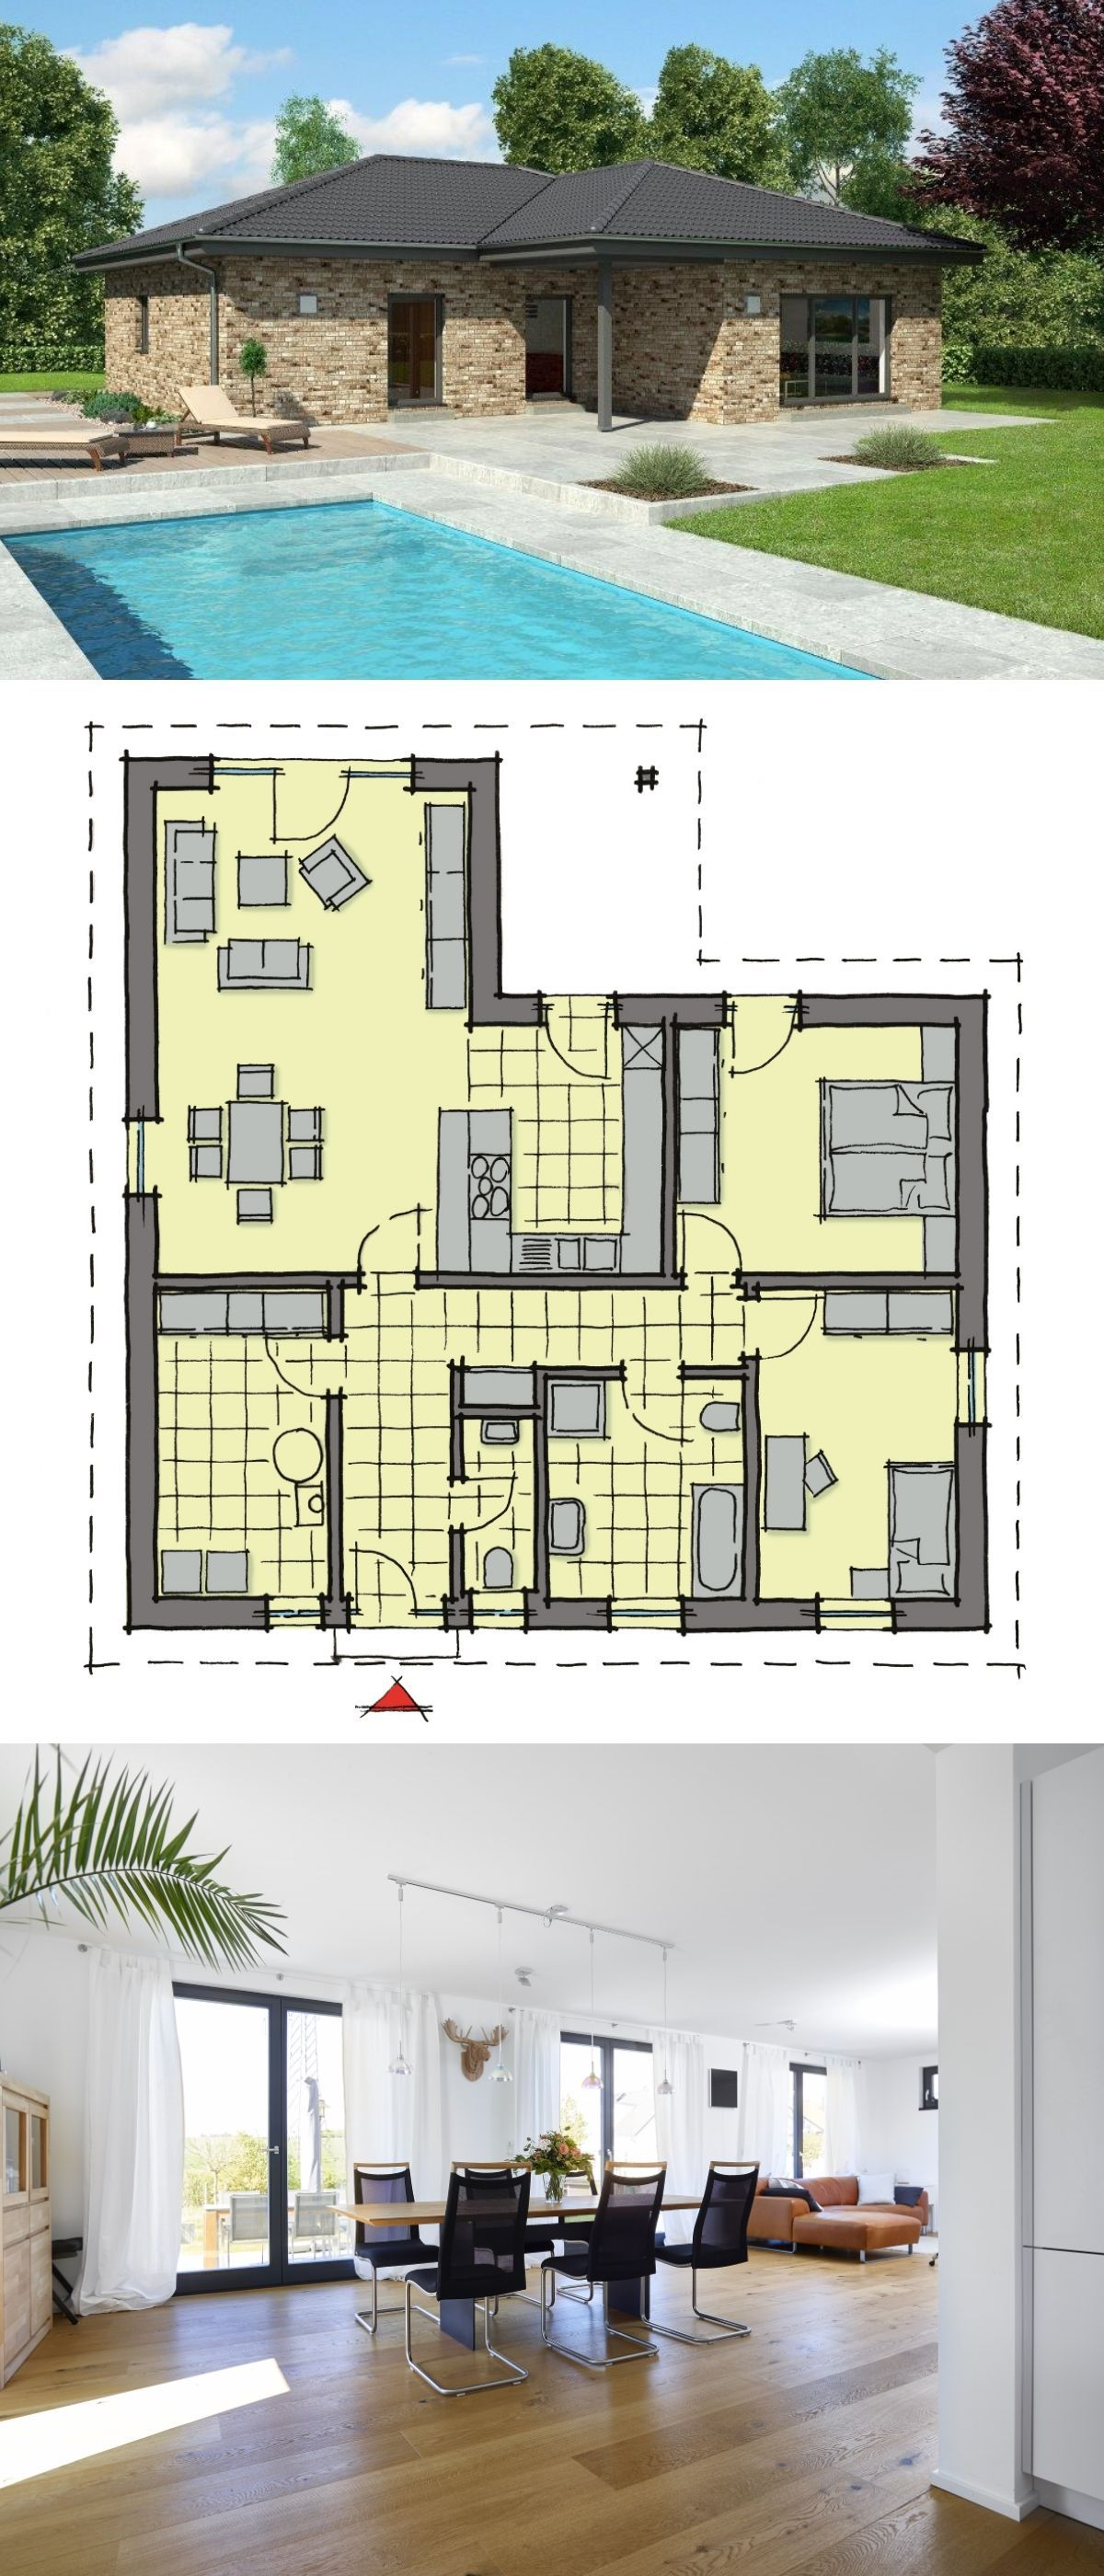 Bungalow house european style architecture with brick and stone facade design house plan calvados